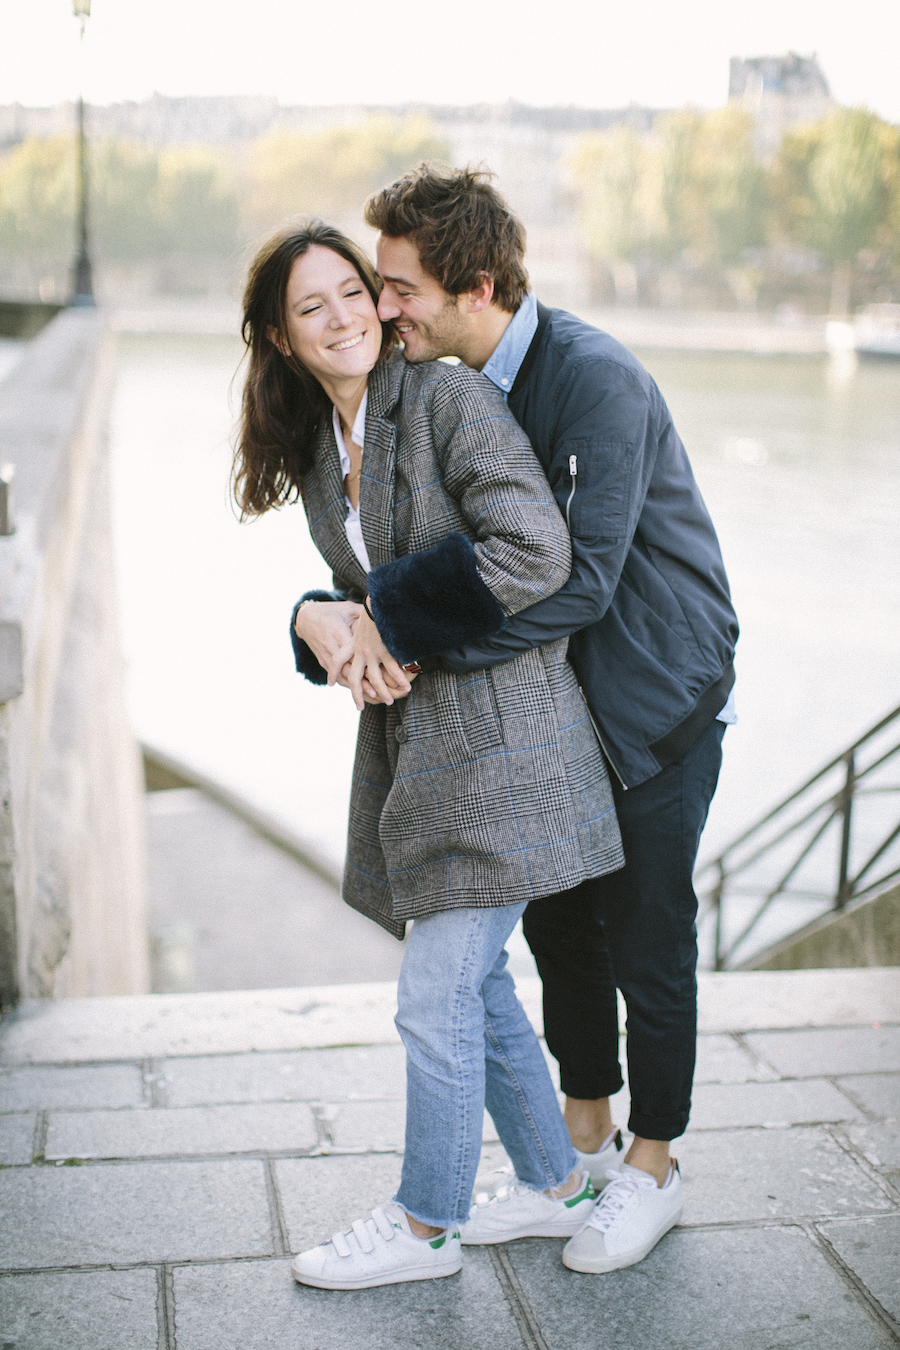 saya-photography-pre-wedding-couple-engagement-paris-ile-saint-louis-33.jpg